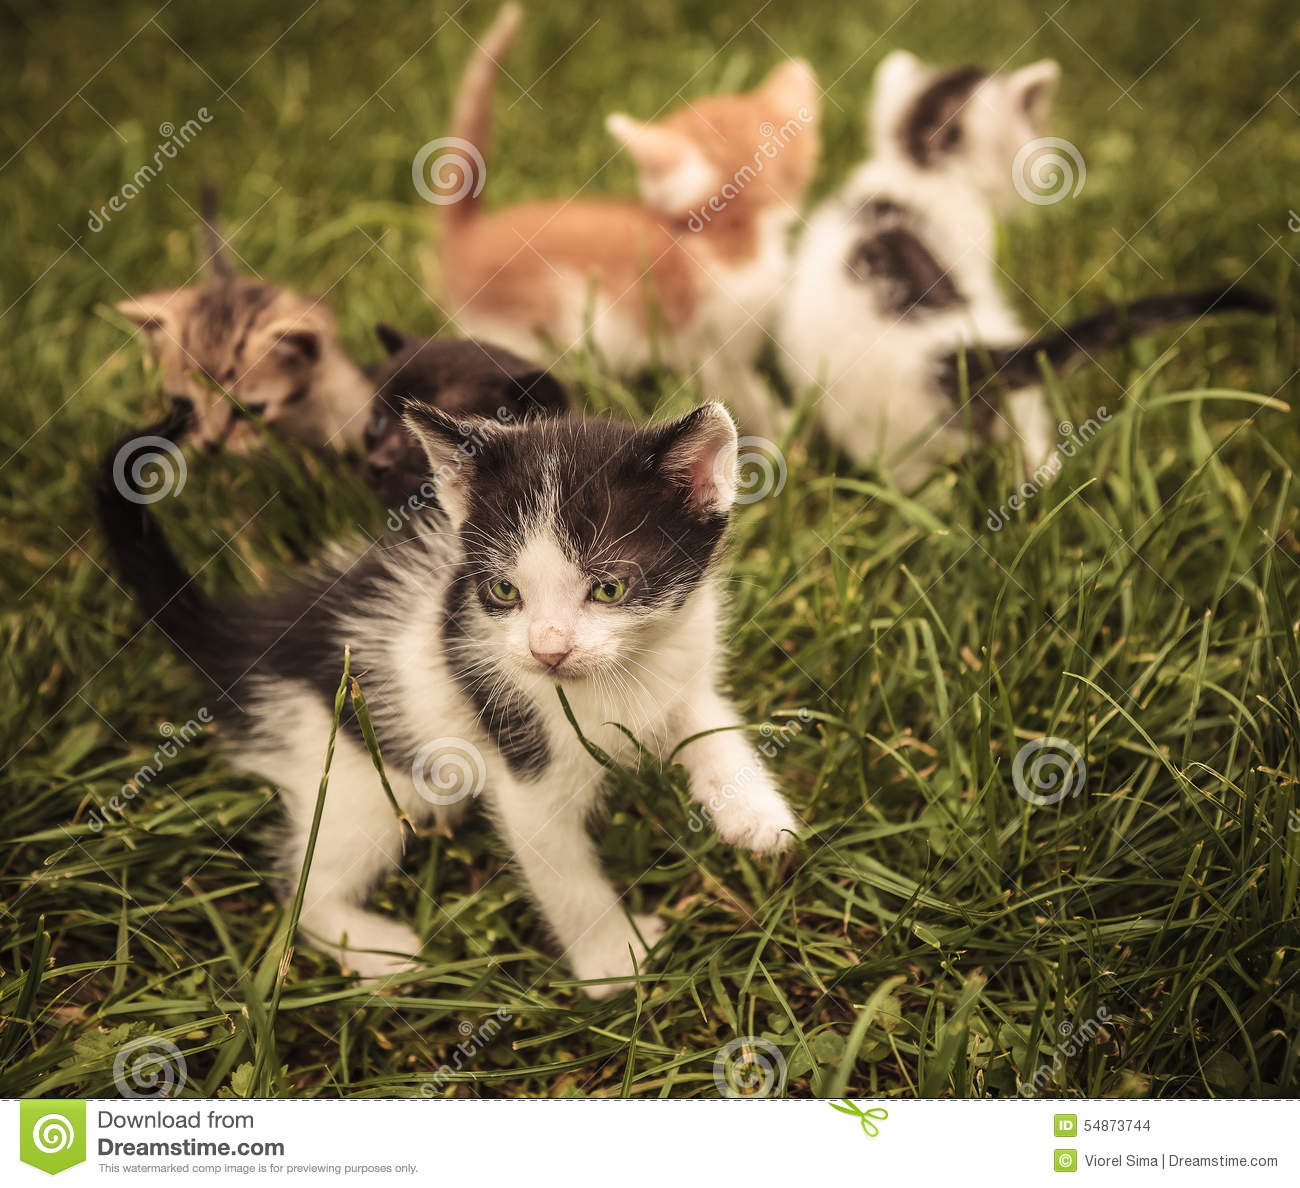 Baby Cats Playing In The Grass Stock Image